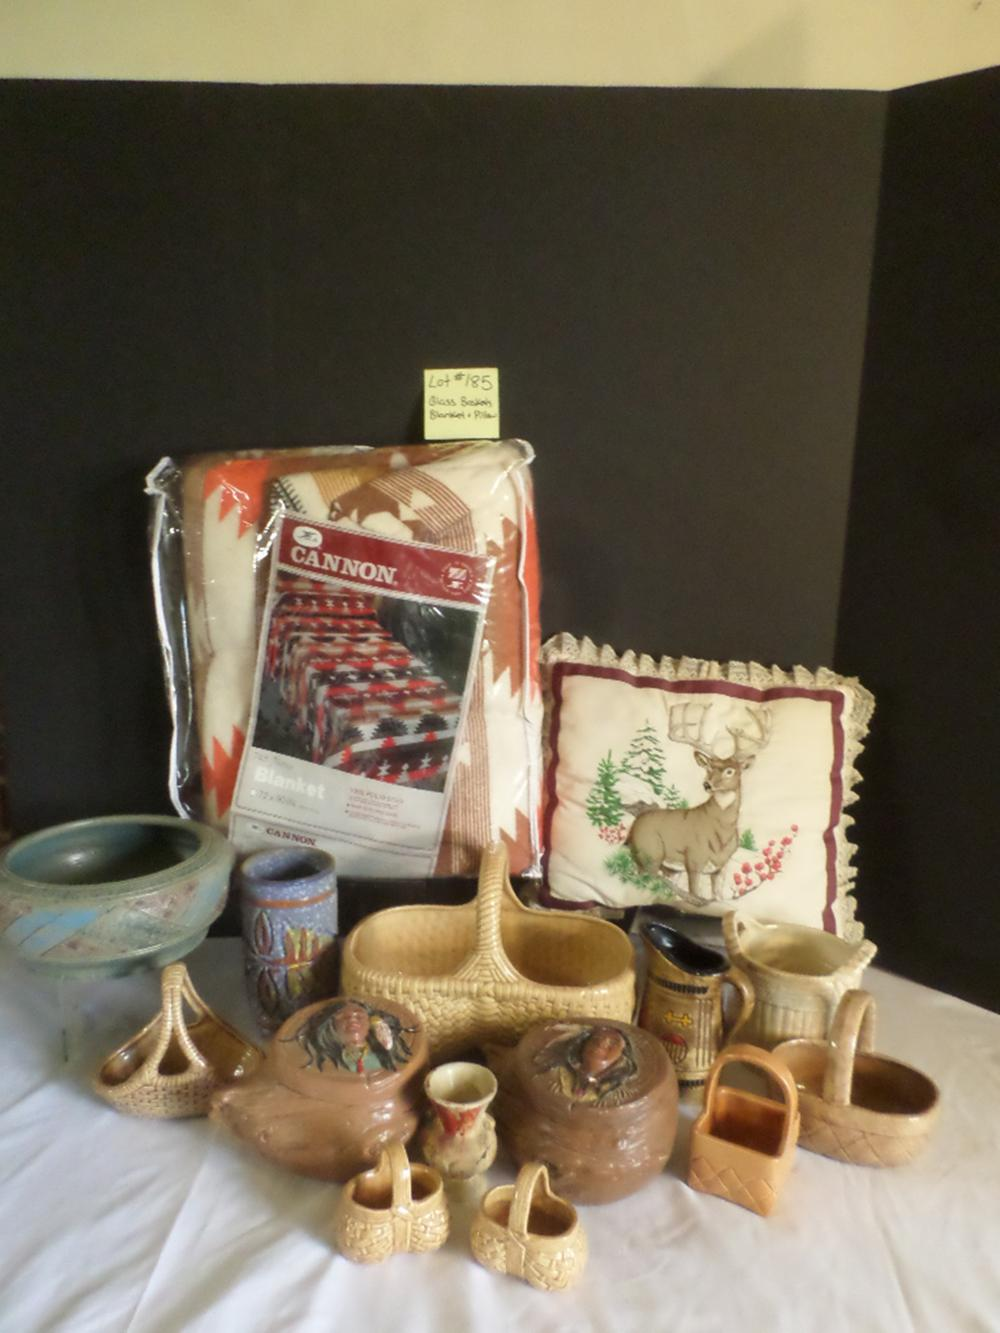 Glass Baskets and Pottery, Navajo Cannon Blanket, 2 Indian Baskets, Deer Pillow